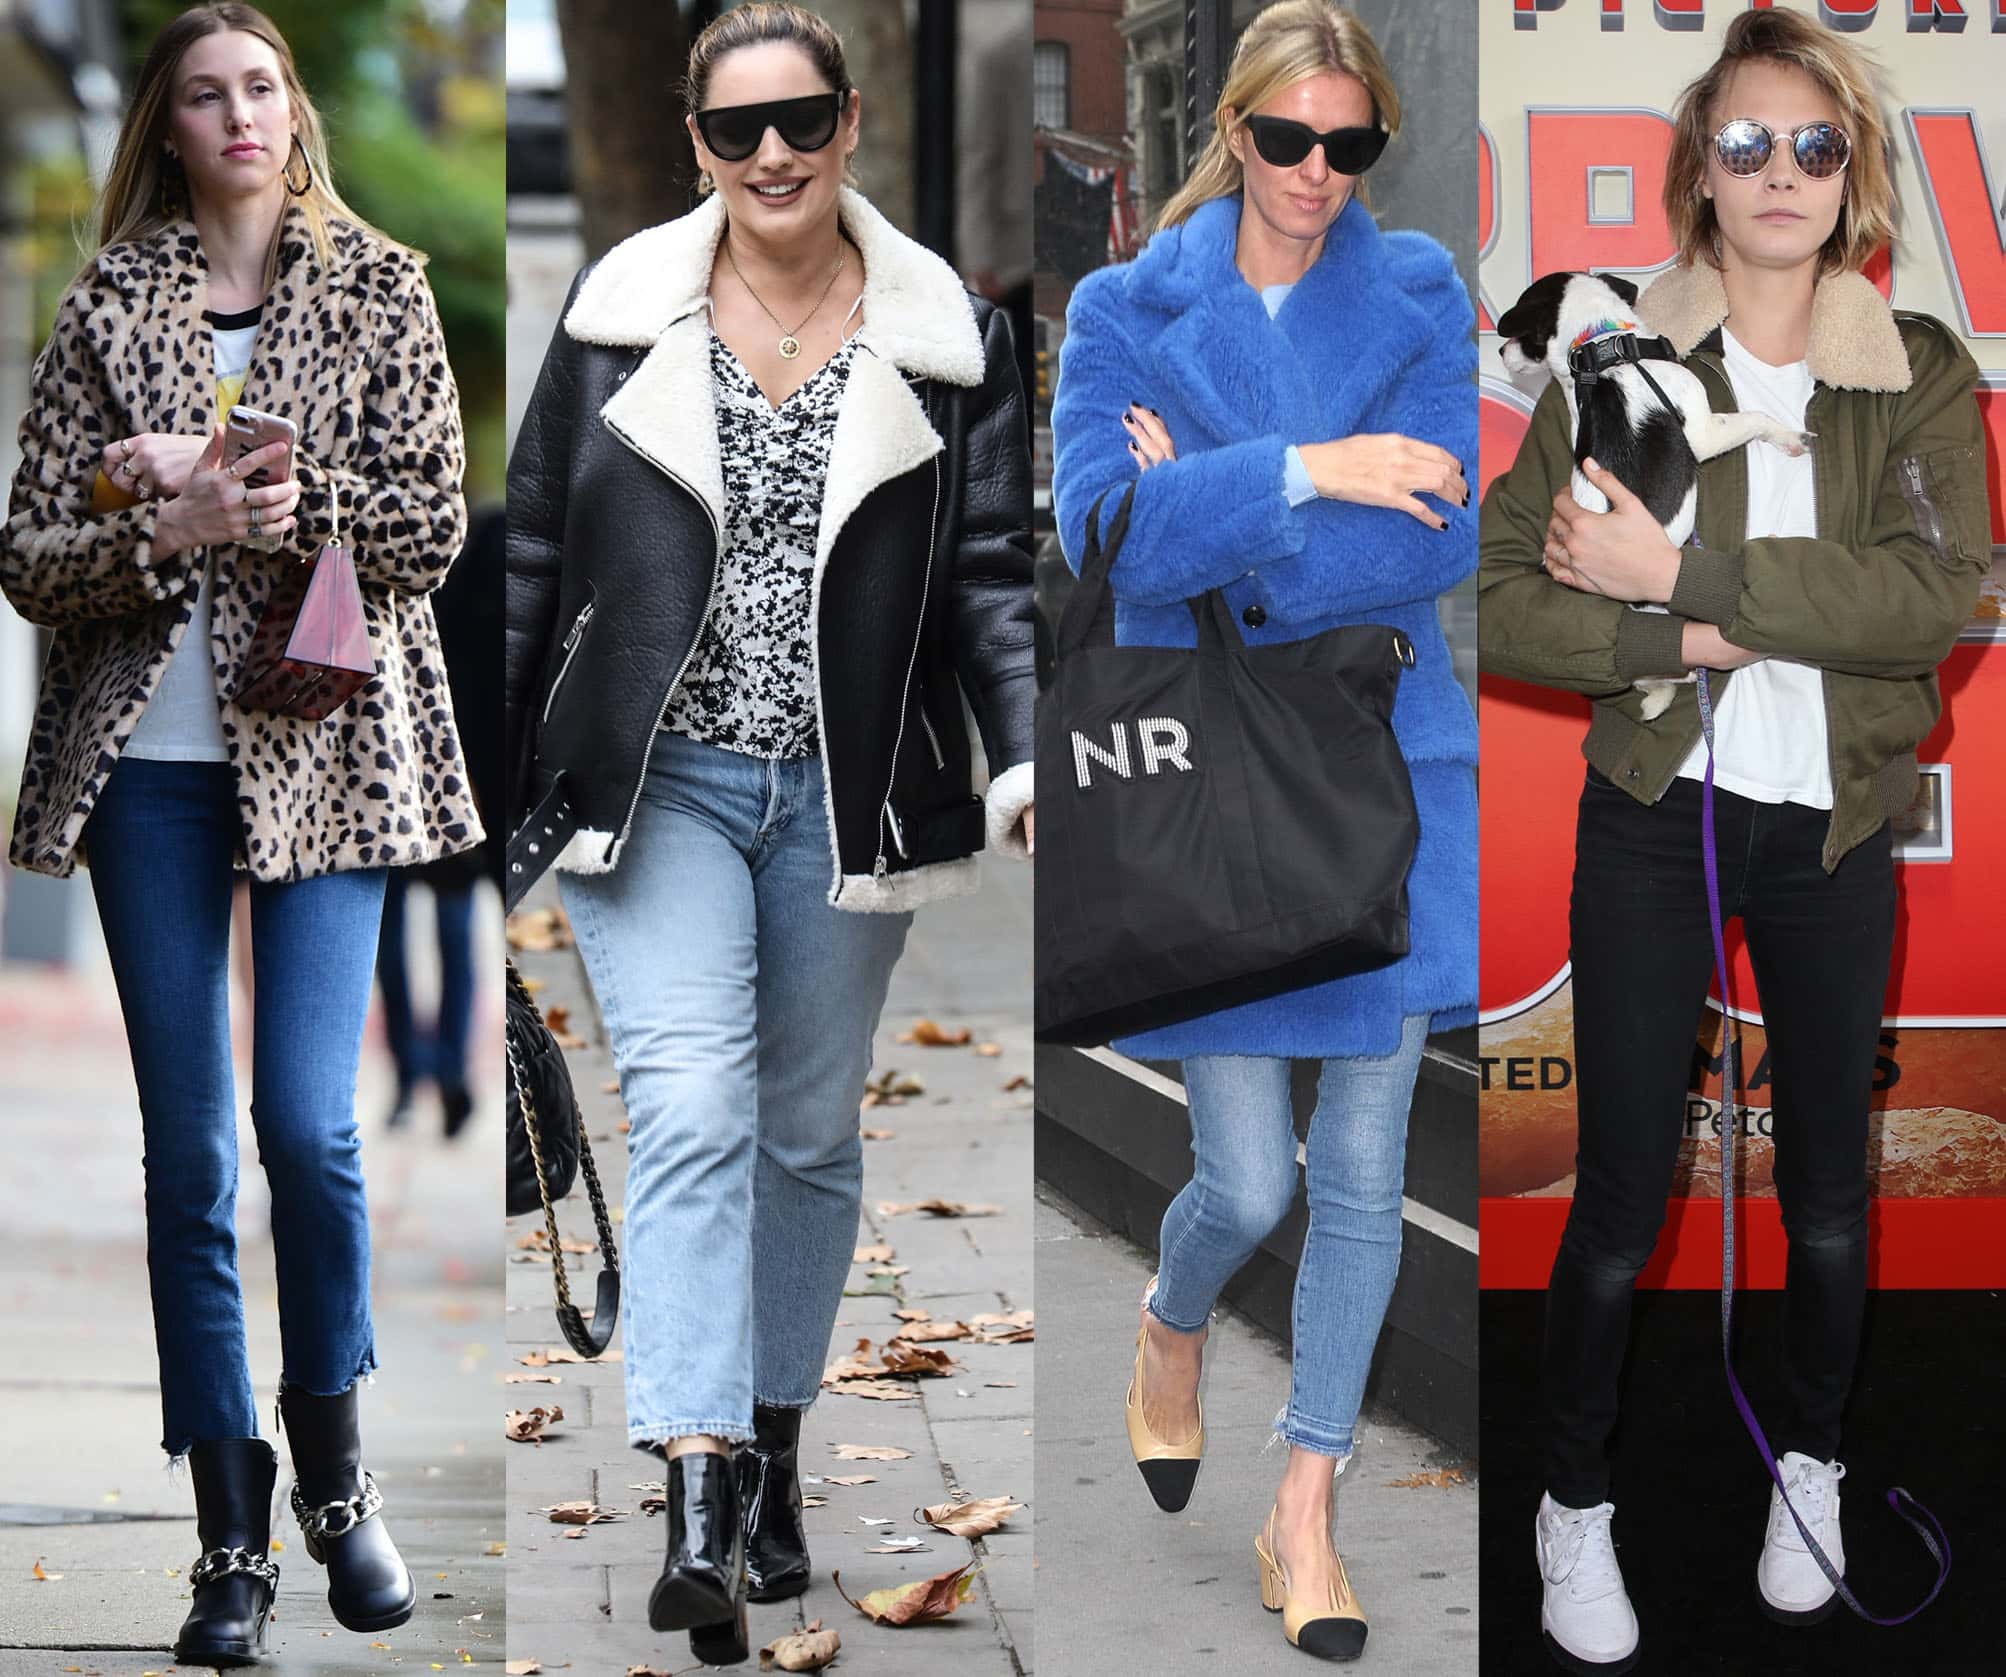 Whitney Port, Kelly Brook, Nicky Hilton, and Cara Delevingne show how to wear fleece jackets with jeans